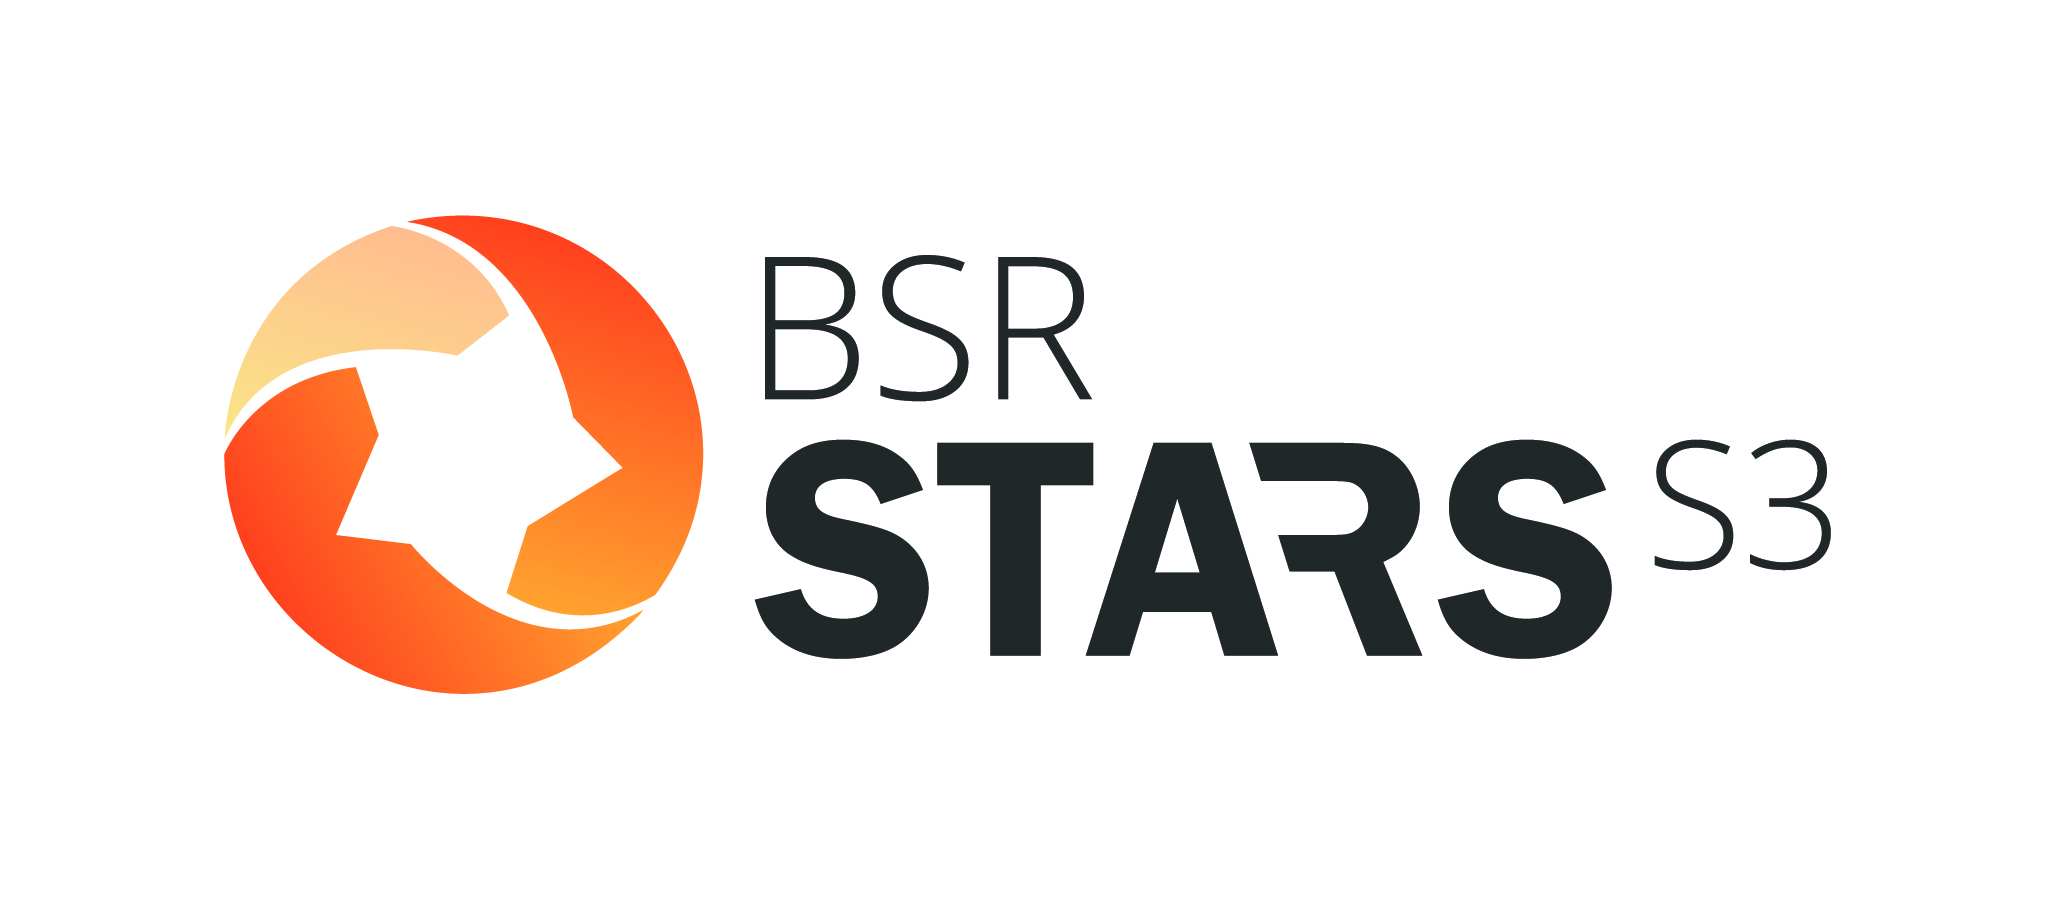 BSR Stars S3 – Smart specialisation through cross-sectoral Bio-, Circular- and Digital economy ecosystems